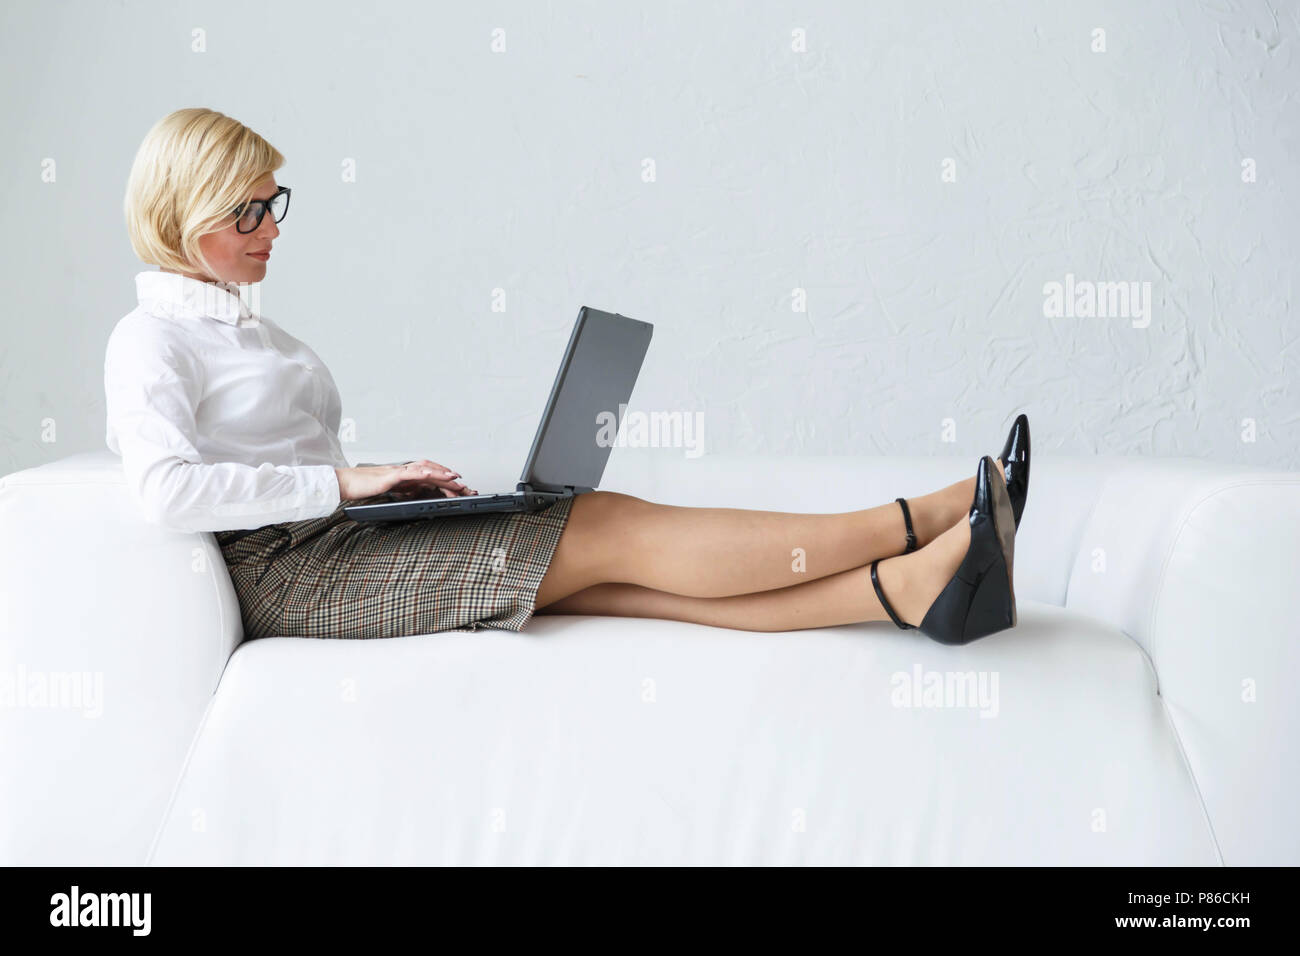 Stylish blonde businesswoman wears eyeglasses sitting on the white stylish leather sofa working with laptop on knees - Stock Image